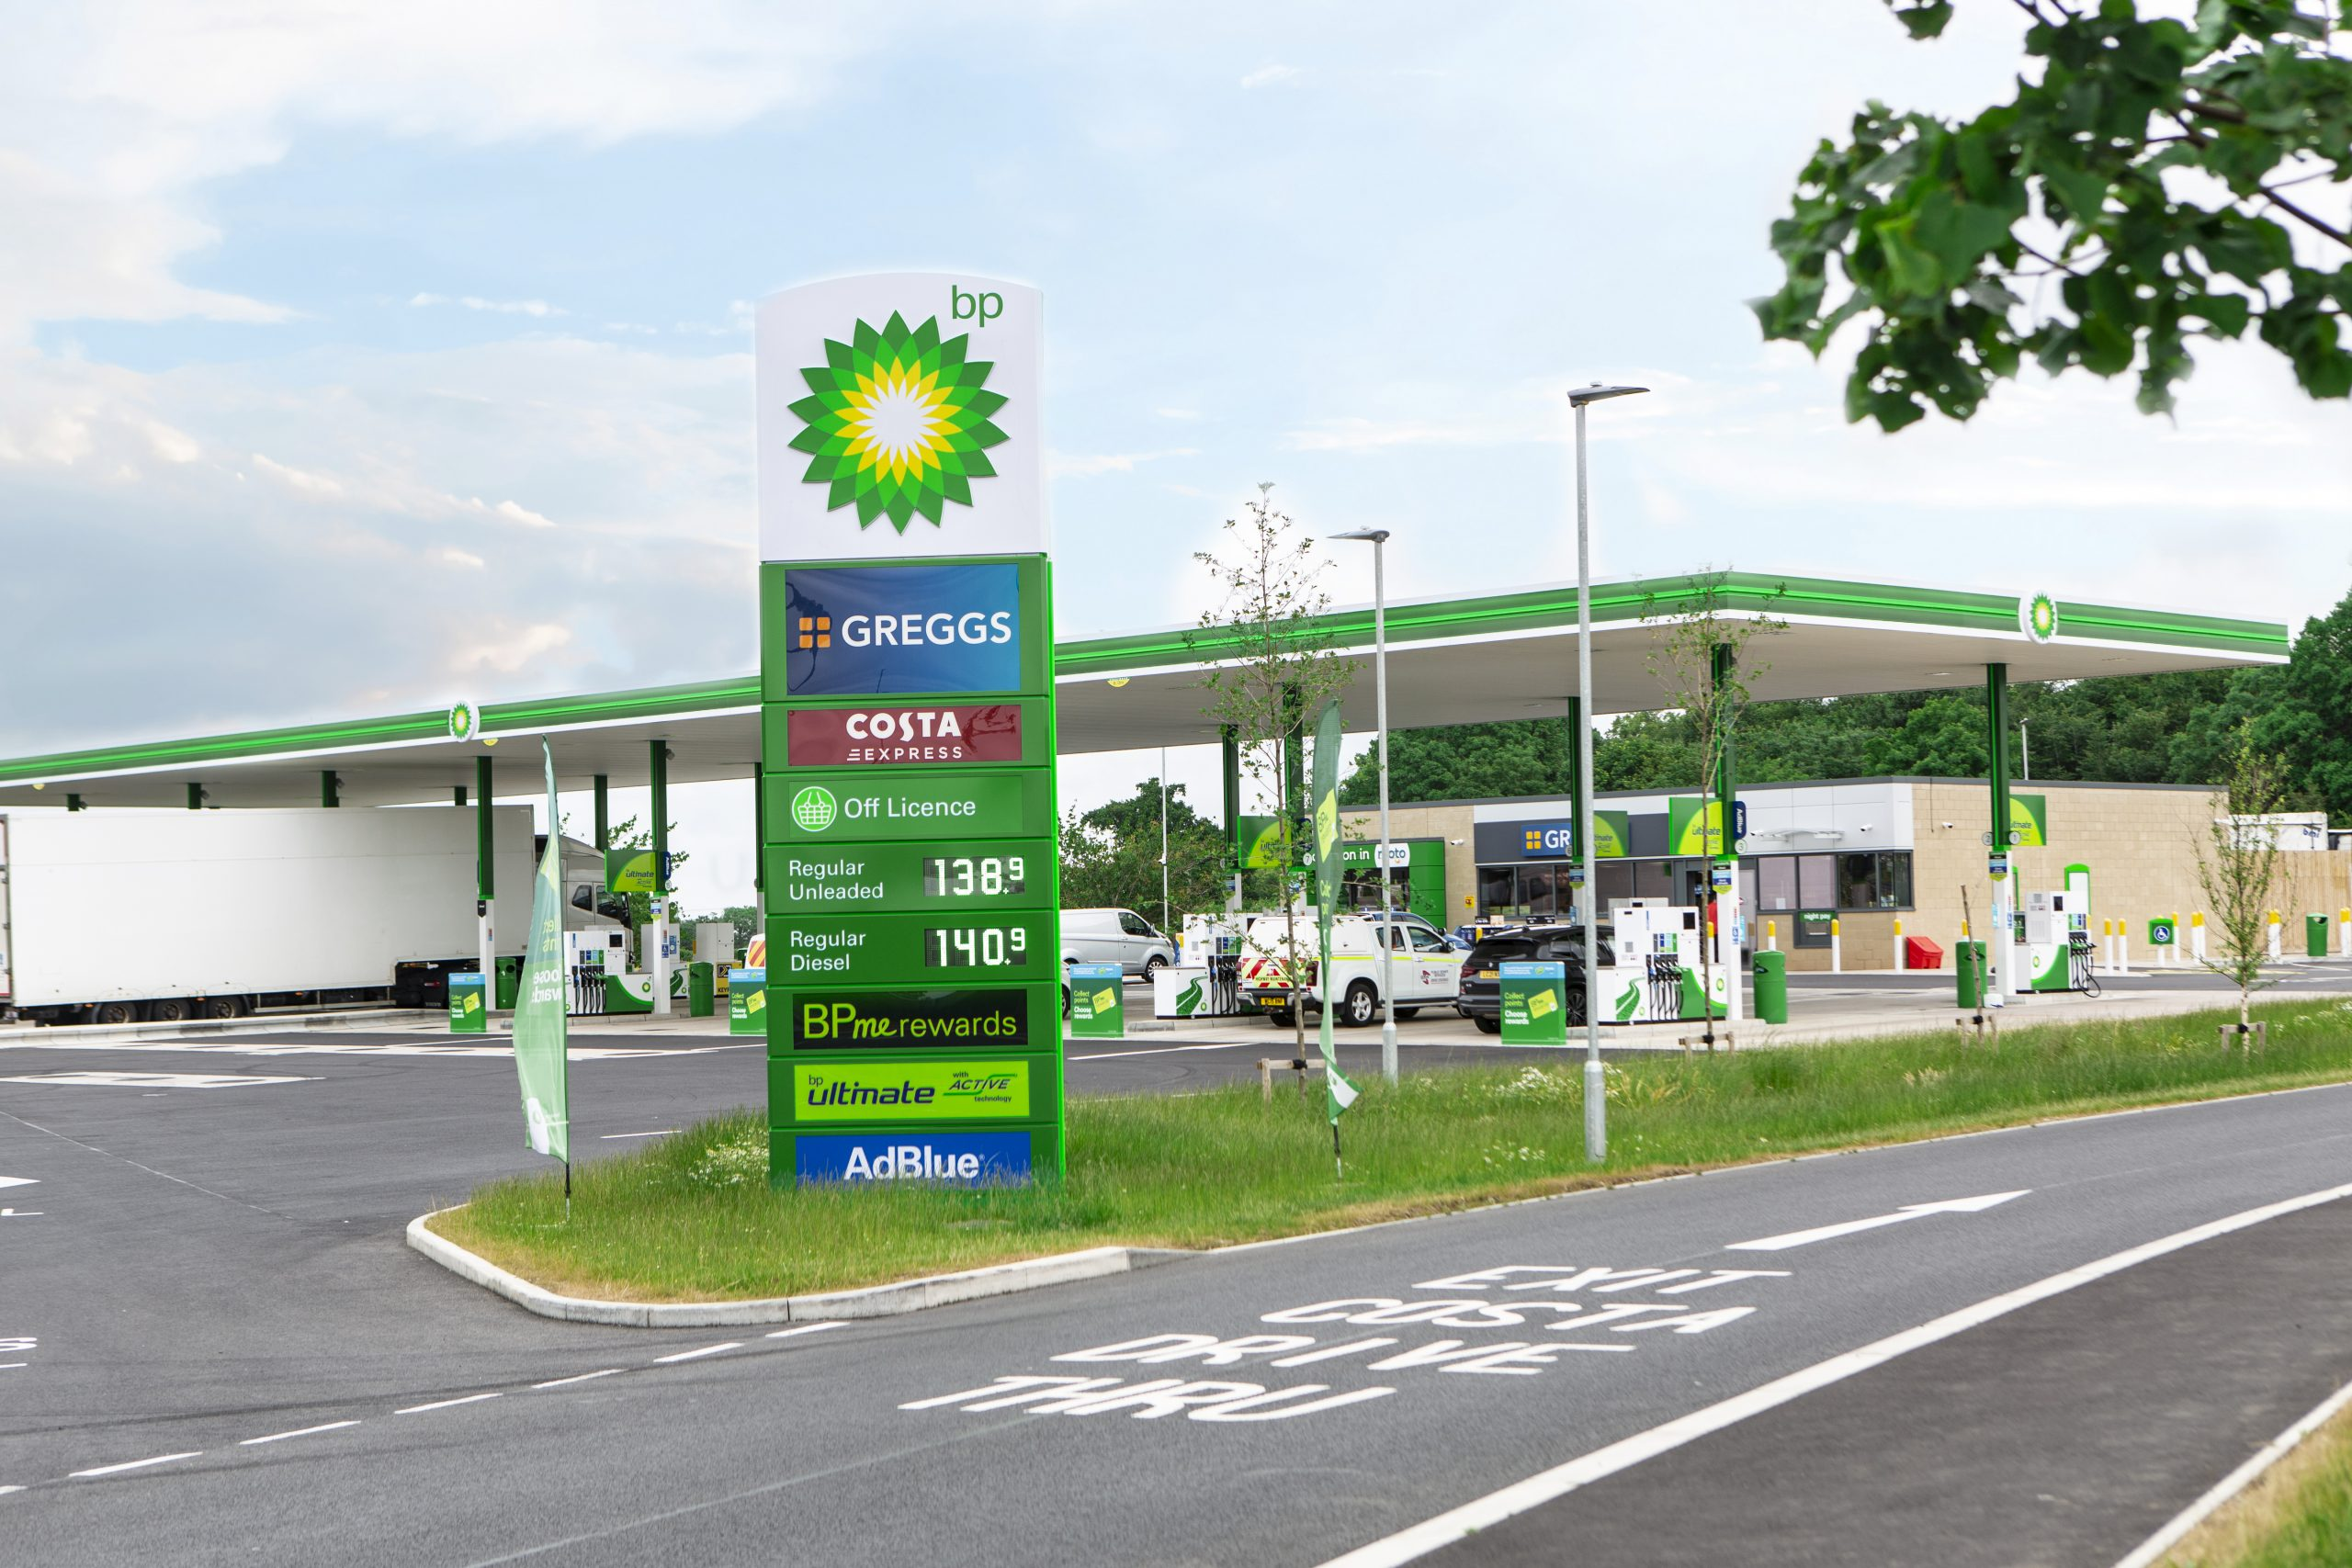 M6 Moto Services Rugby - BP Garage Emma Lowe Commercial Photography